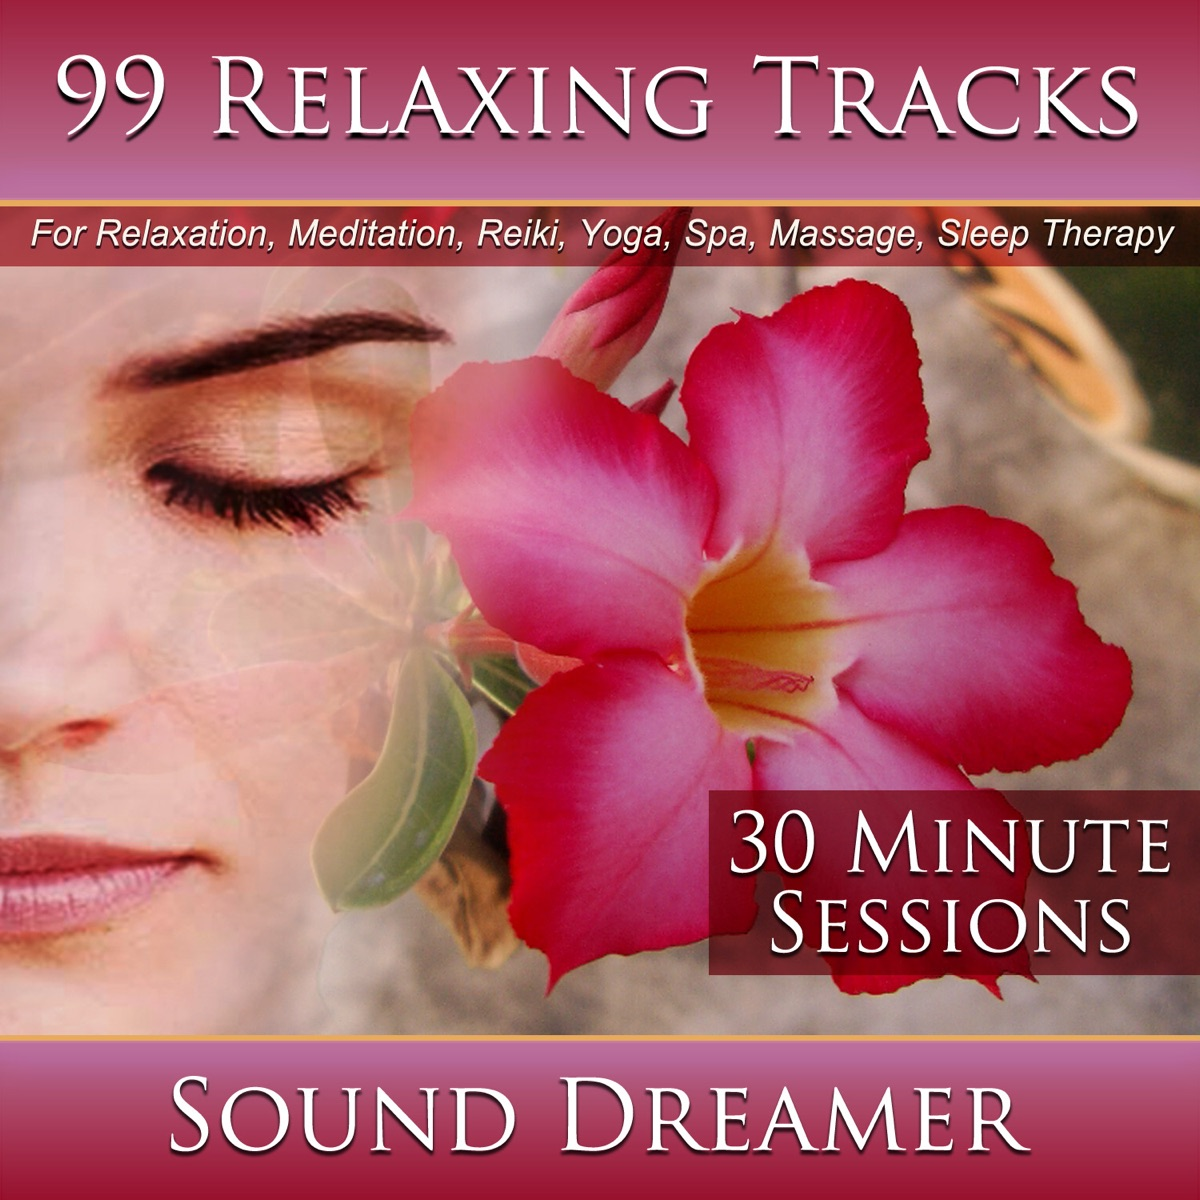 99 Relaxing Tracks Album Cover by Sound Dreamer